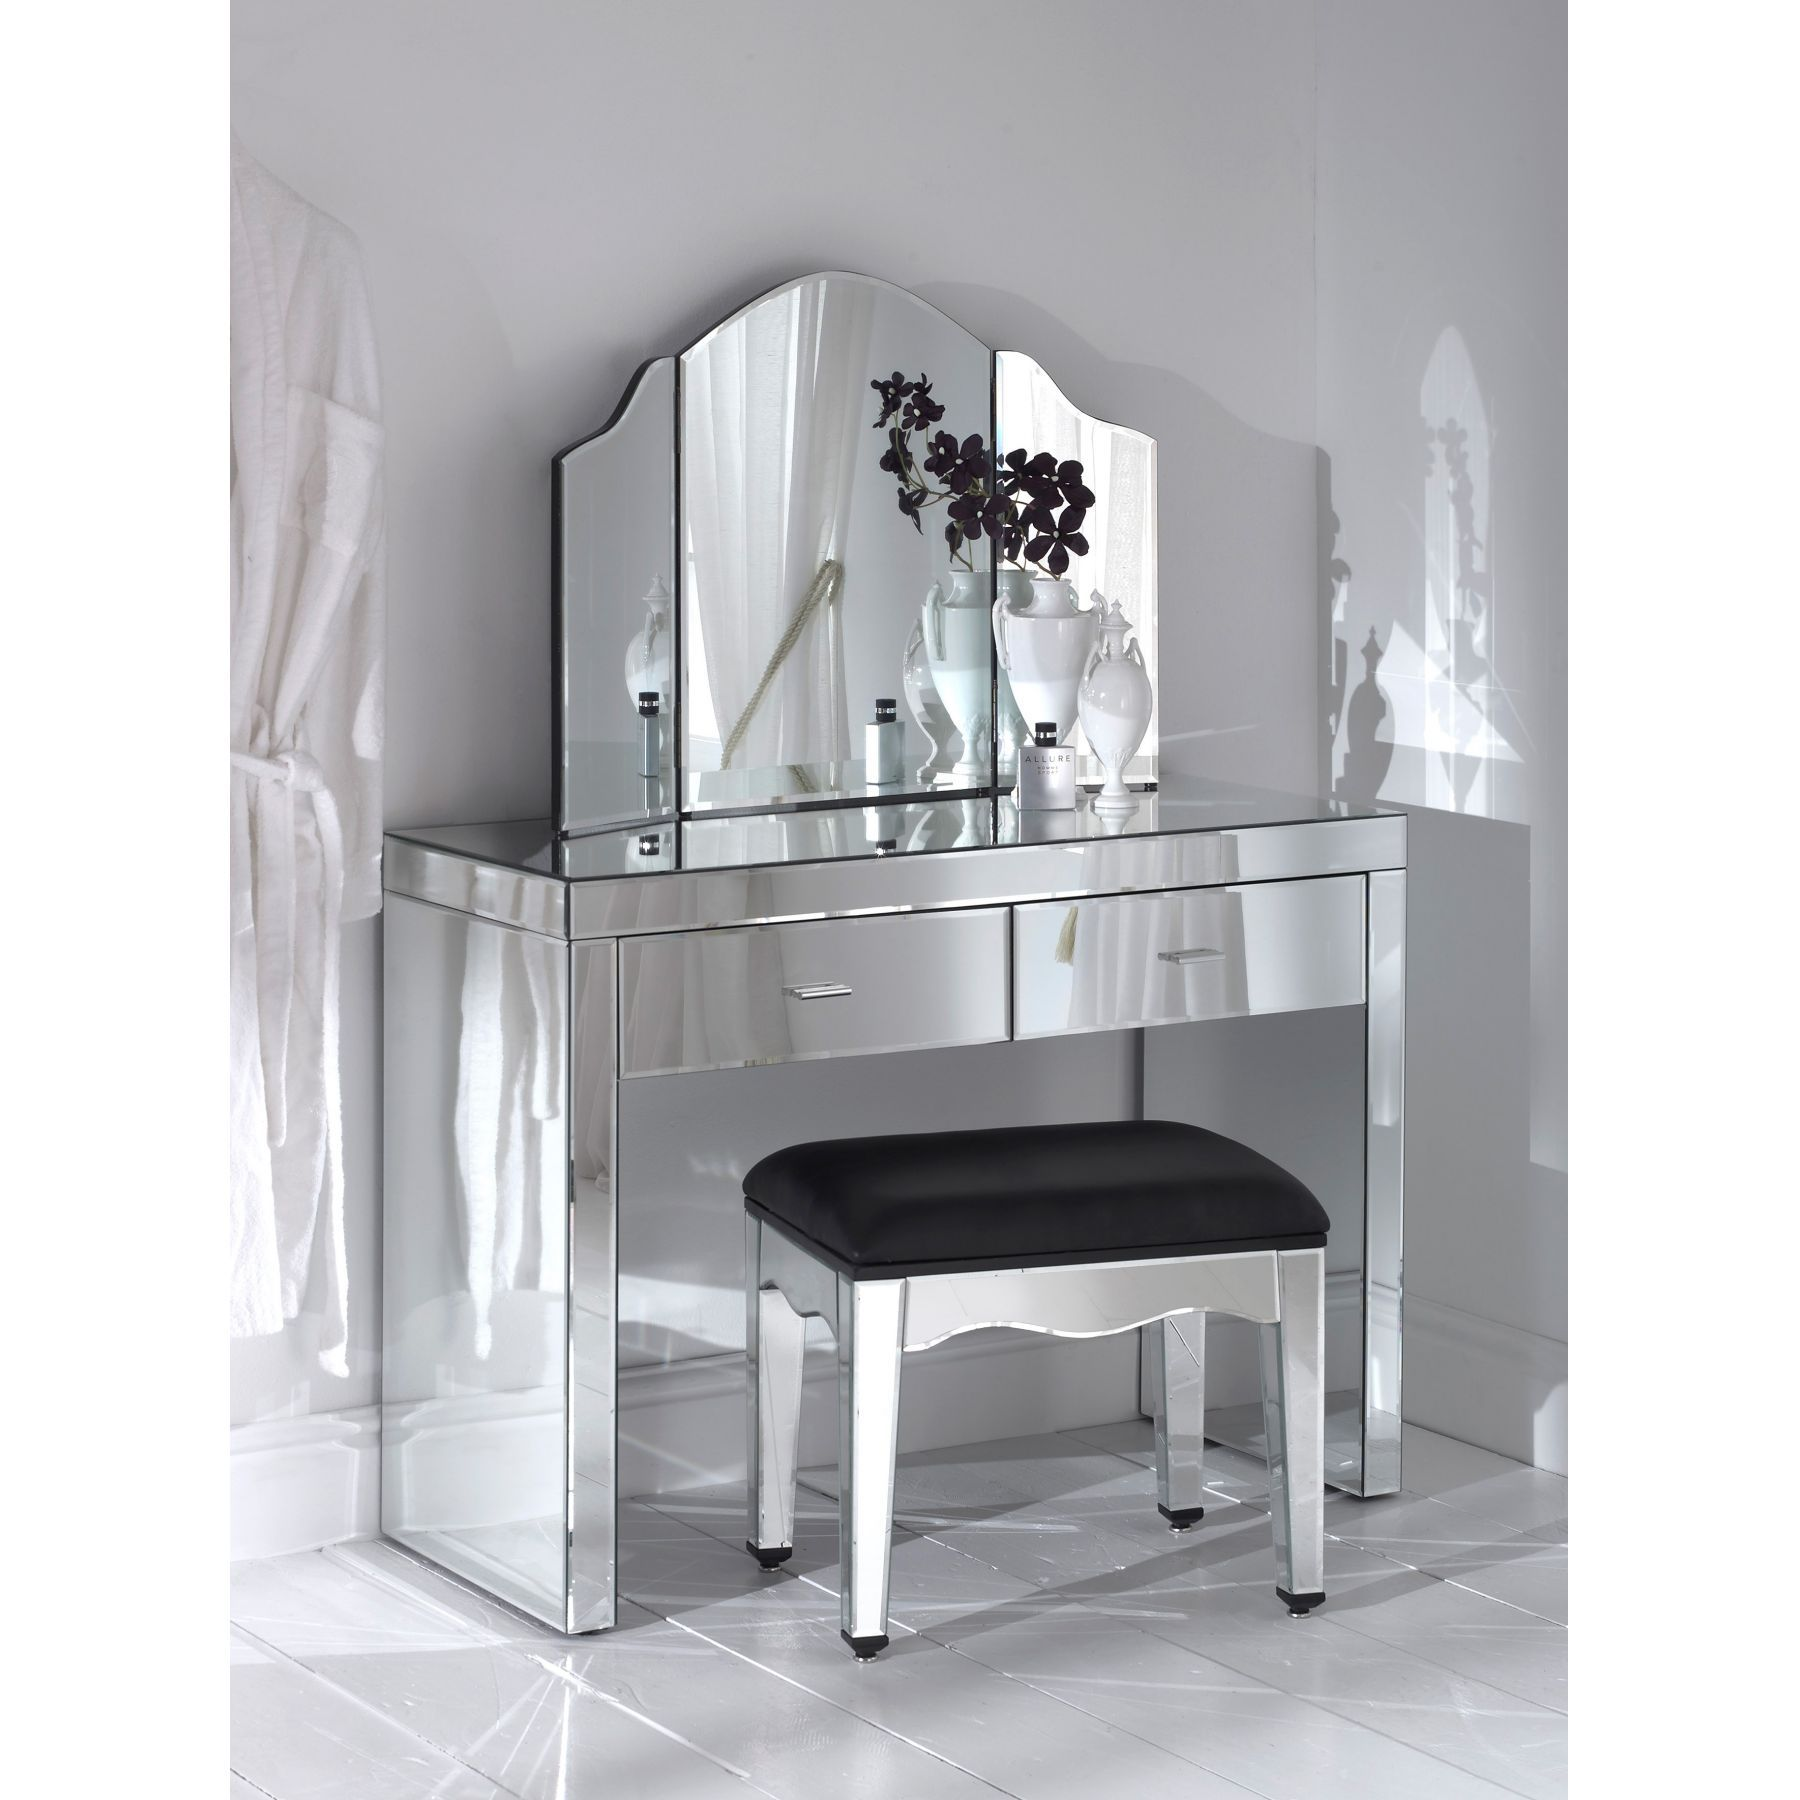 impressive makeup vanity inspirations room high organization quality for tables sale lights table modern of with